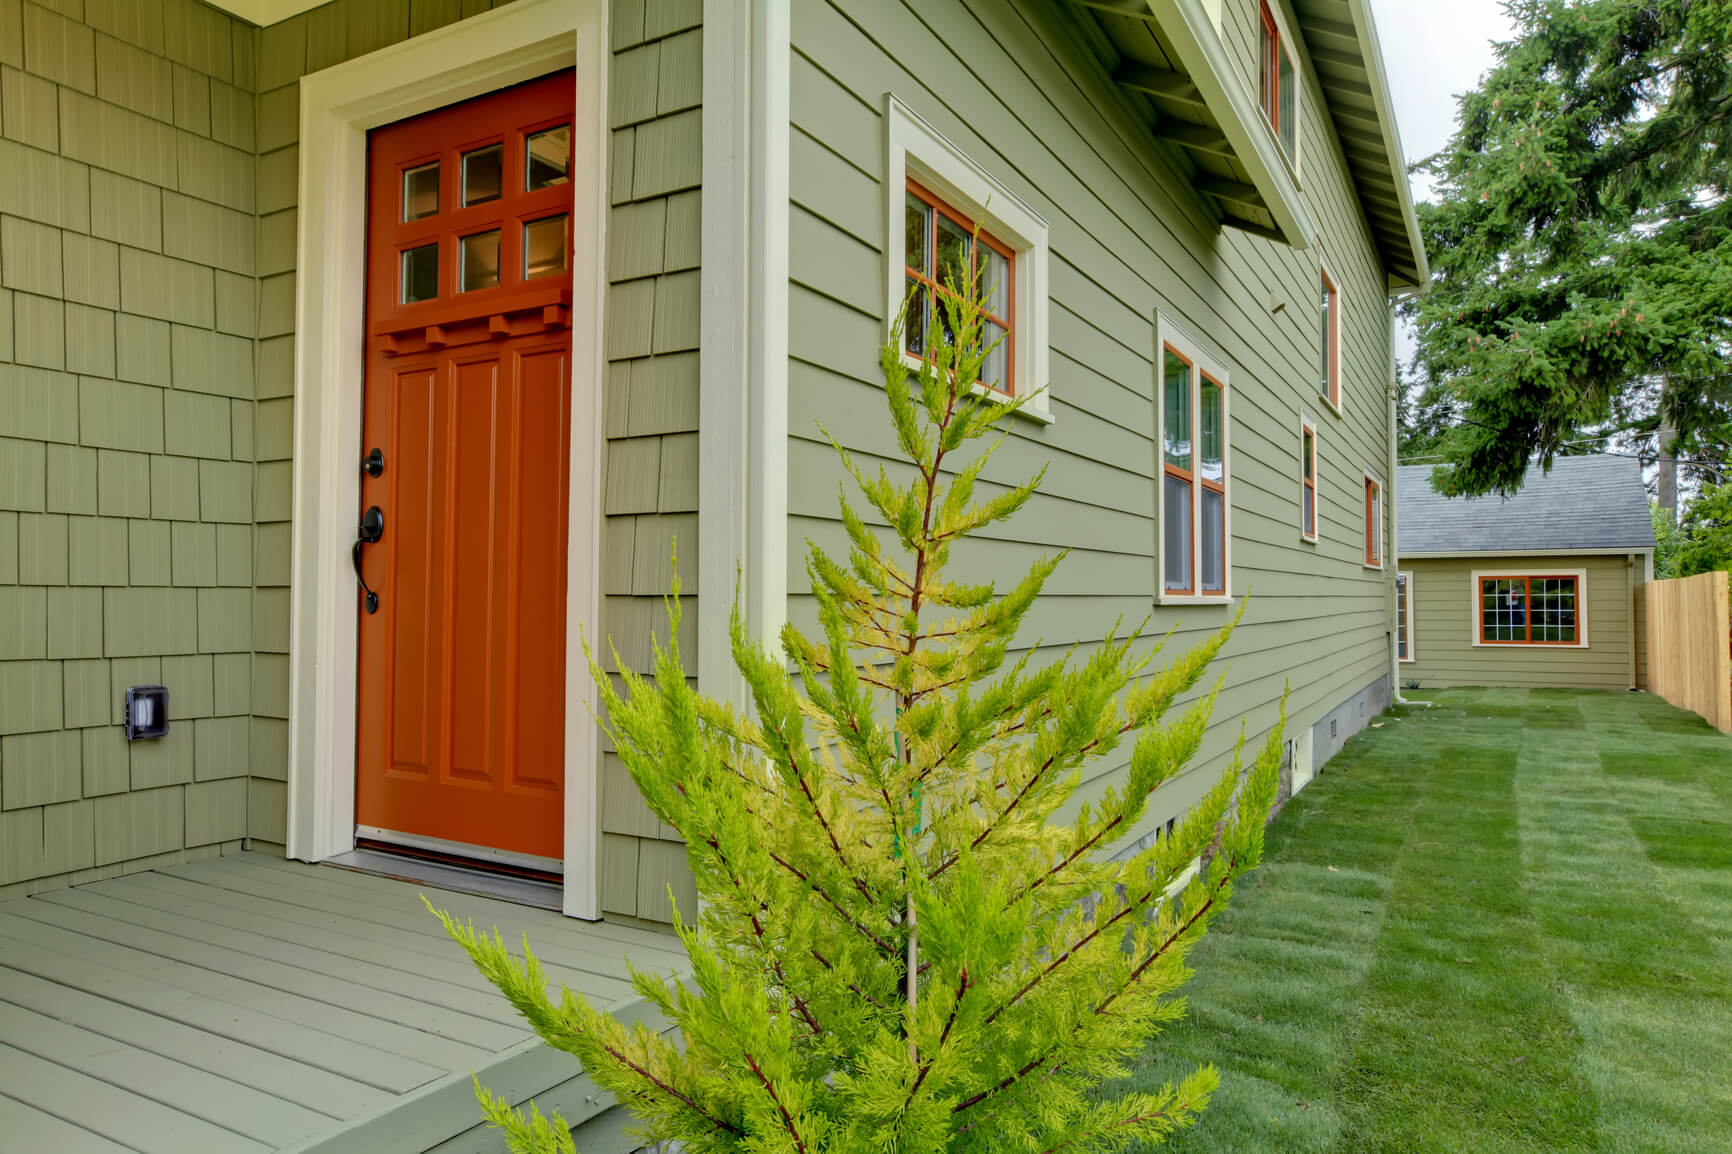 Budget Friendly Curb Appeal Ideas: Paint The Front Door